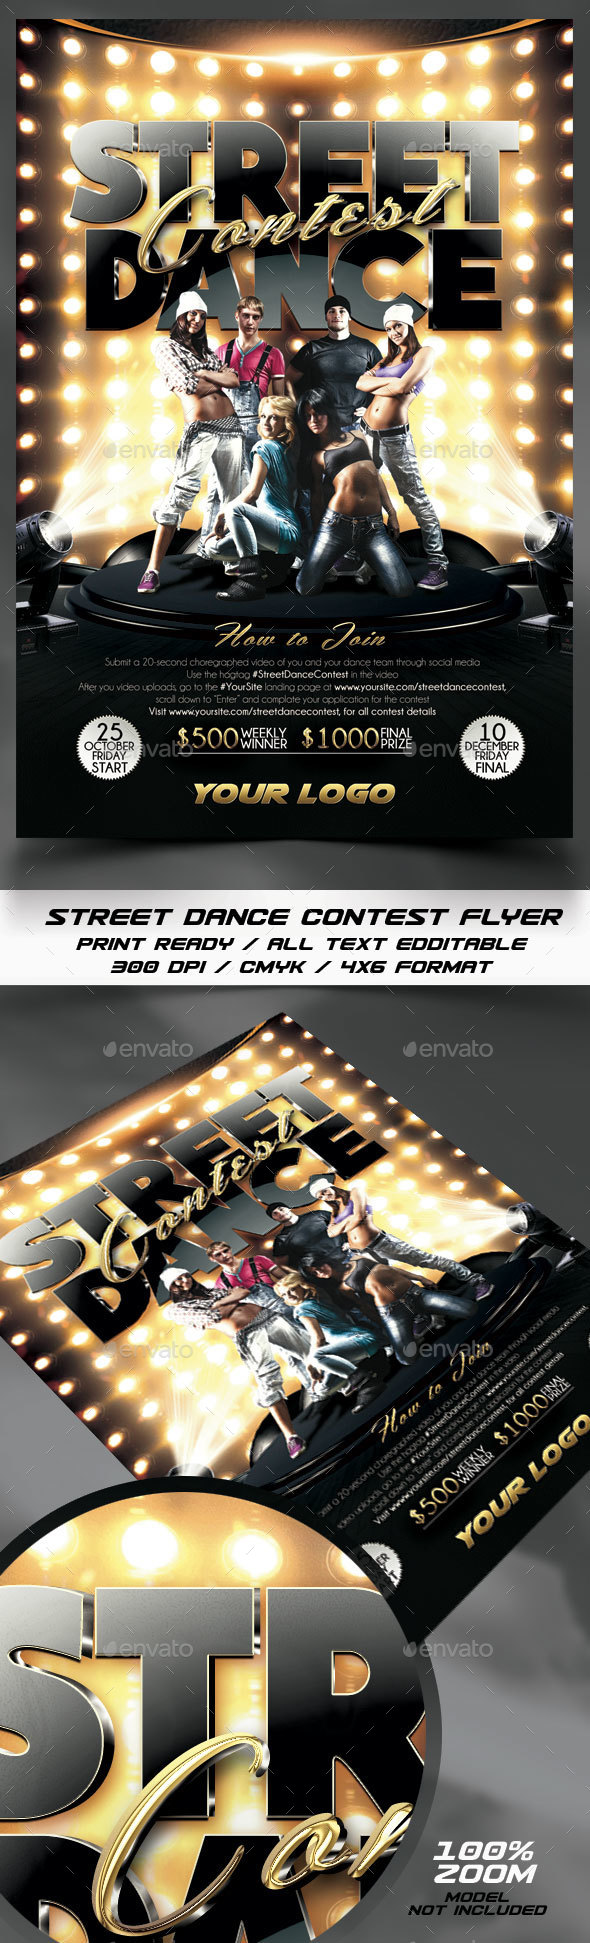 Street Dance Contest Flyer - Events Flyers